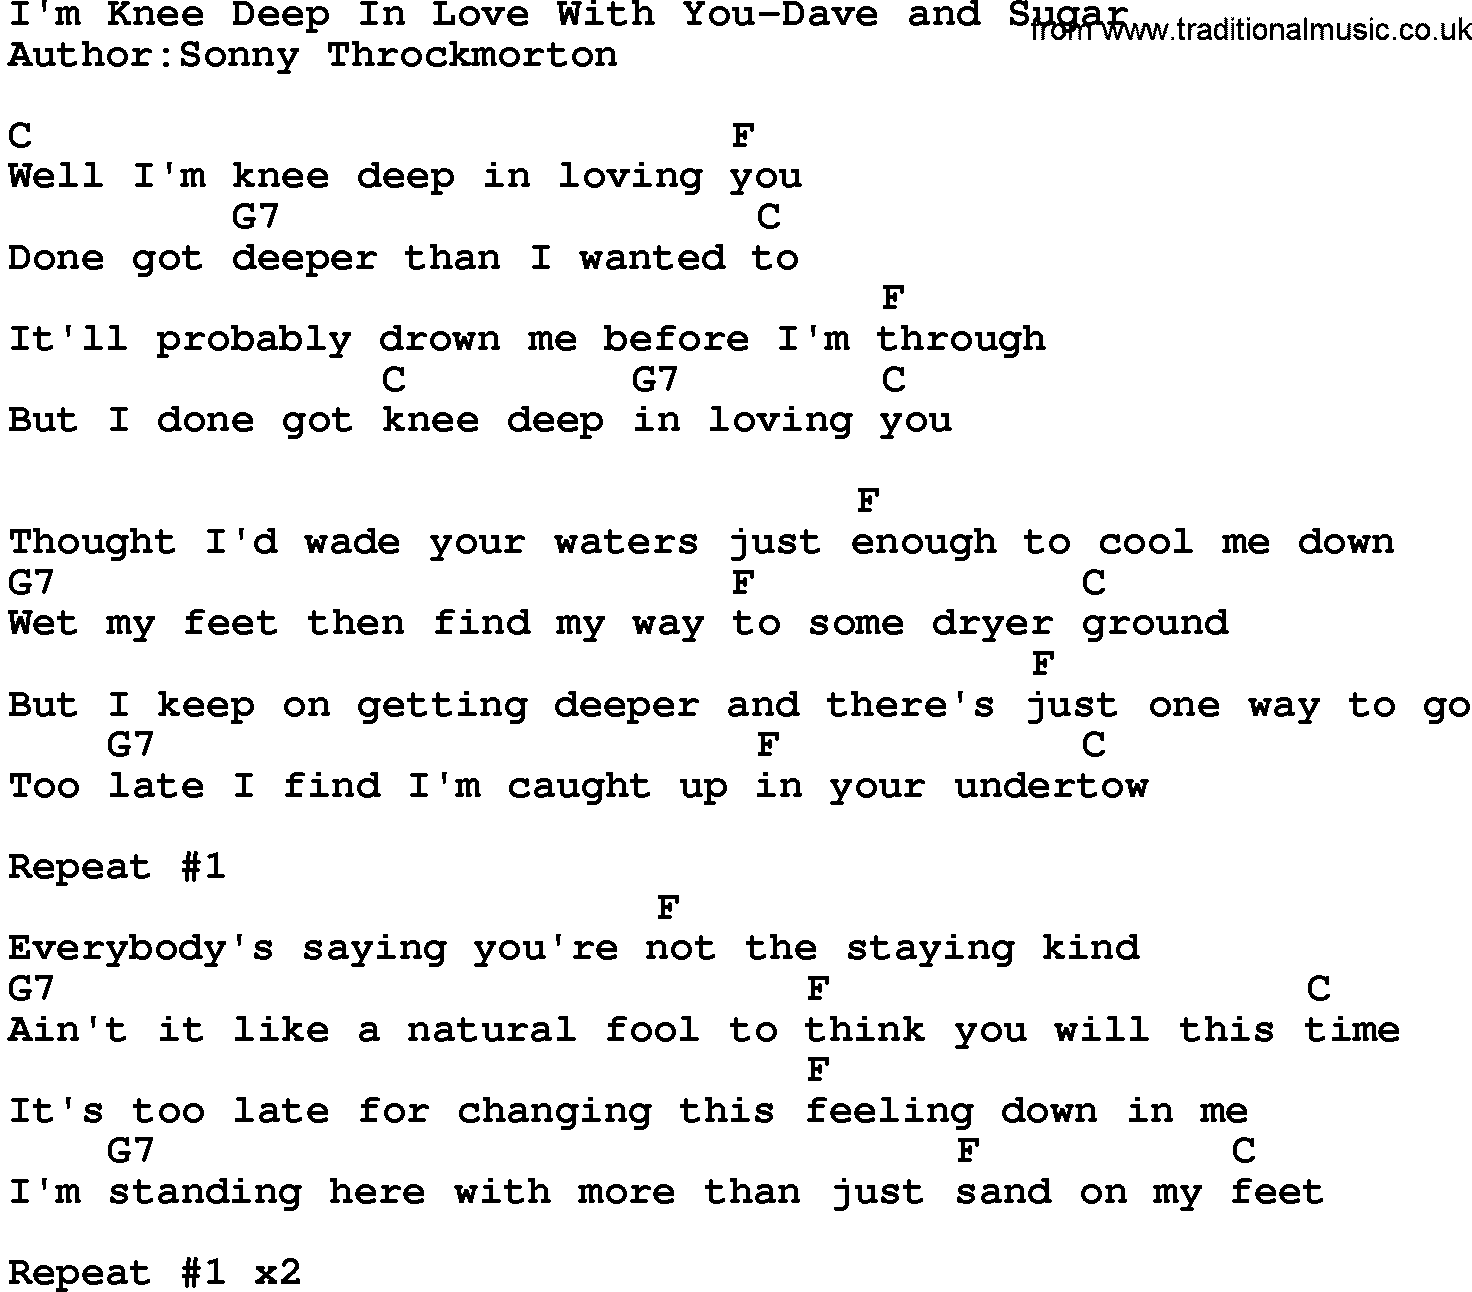 Country Musicim Knee Deep In Love With You Dave And Sugar Lyrics